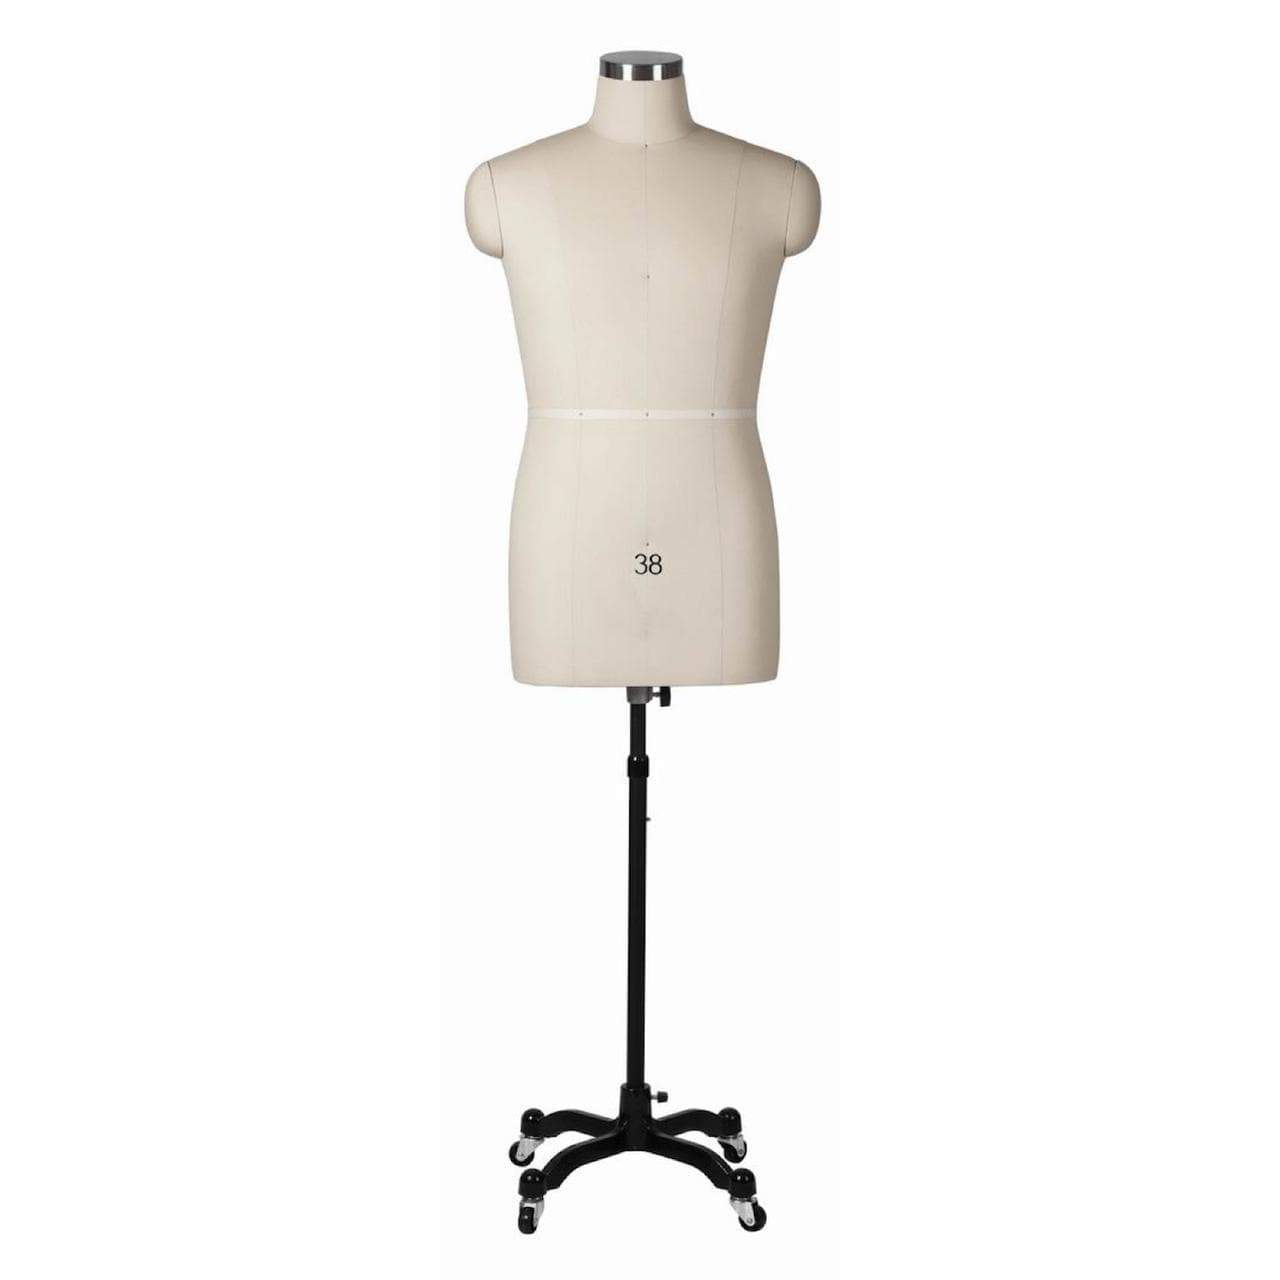 Mannequin Mall Male Professional Dress Form With Removable Shoulders - MM-MMT For Fashion Stores and Retail Shops